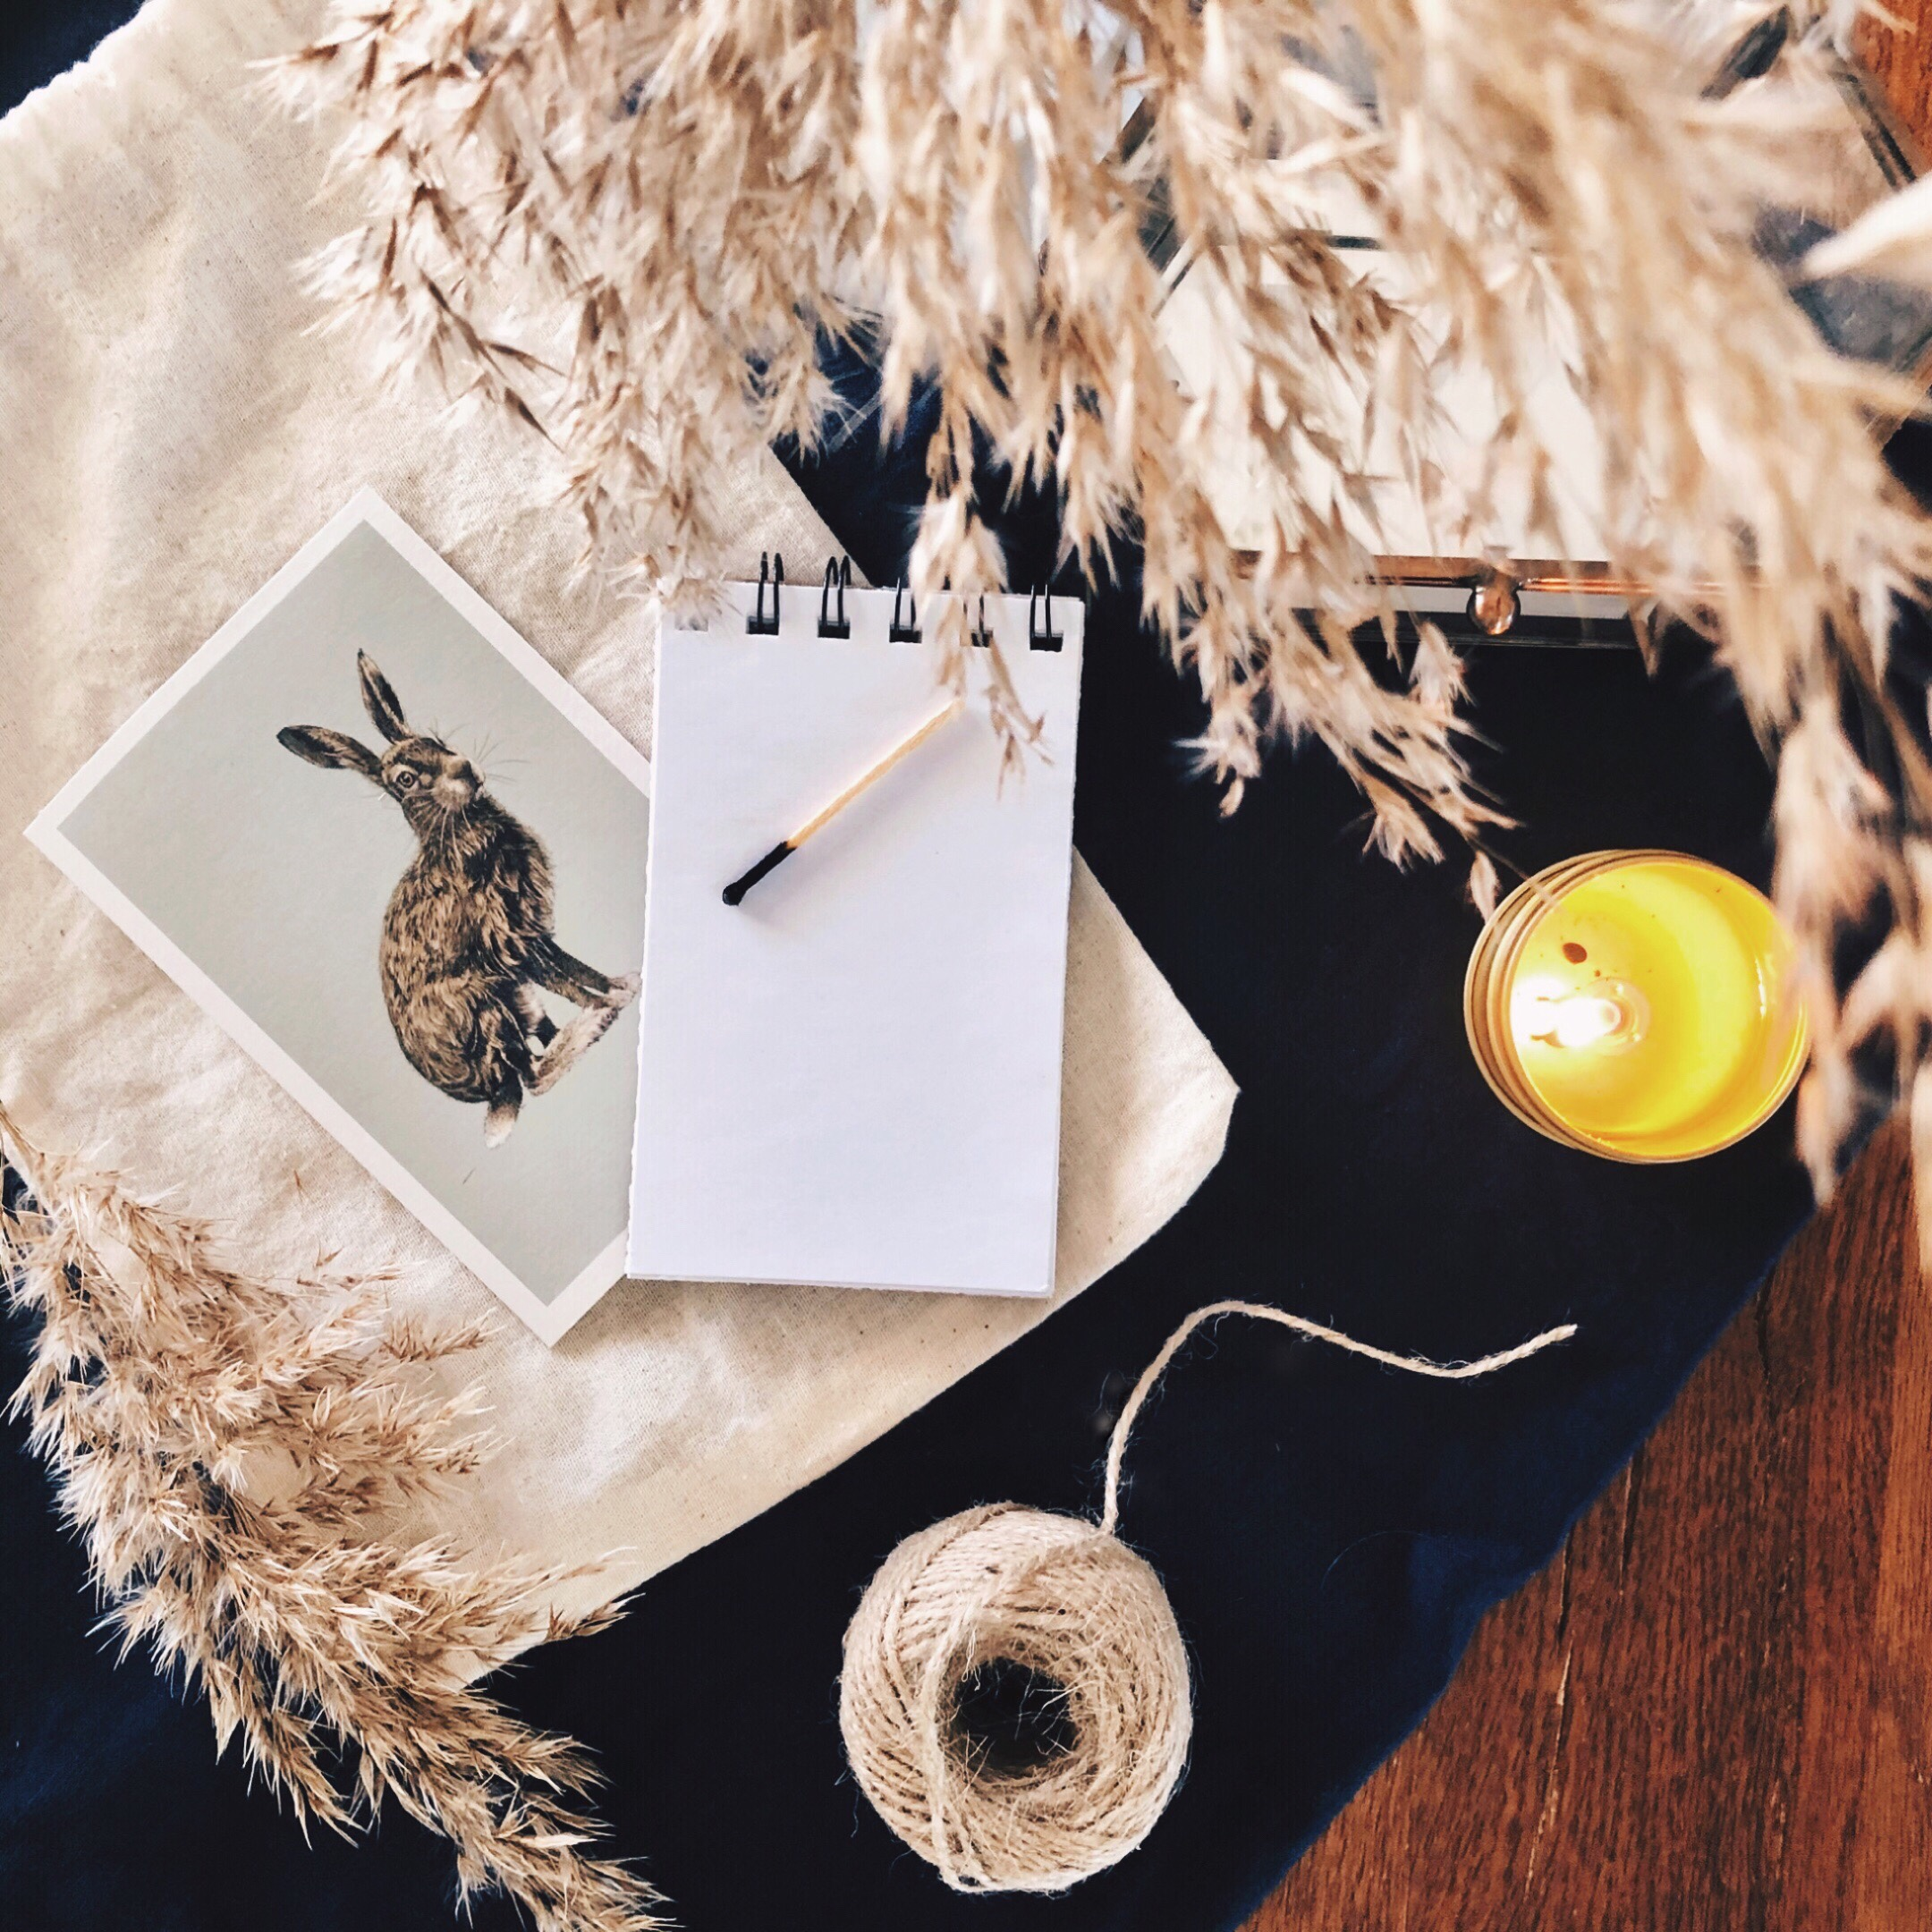 Linen, cotton, dried grasses, a notebook, candle, string and vintage postcard sitting on a timber table.